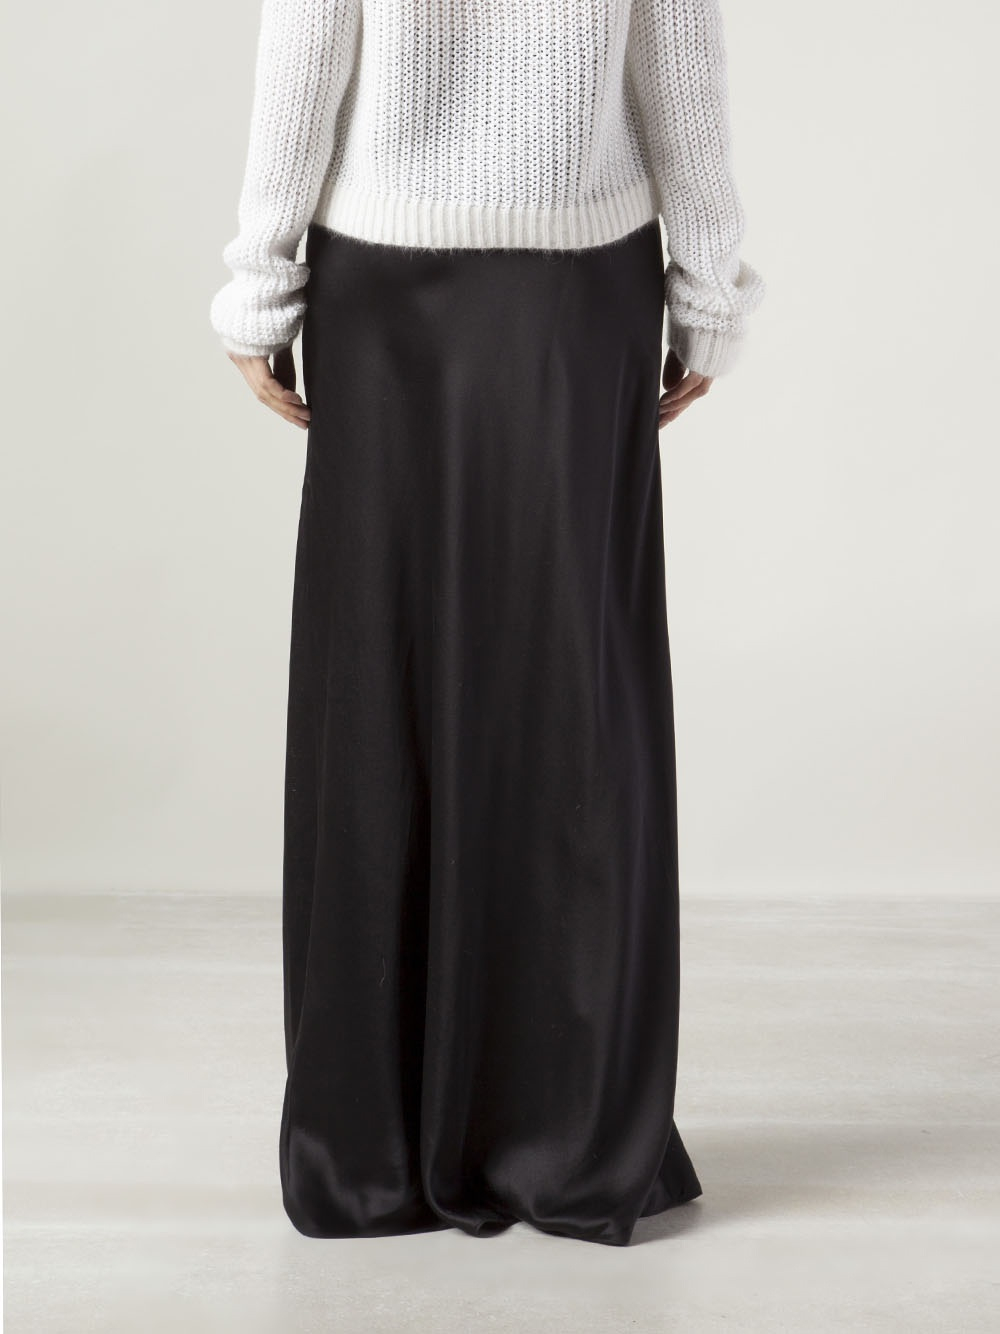 Tess Giberson Long Straight Skirt in Black | Lyst